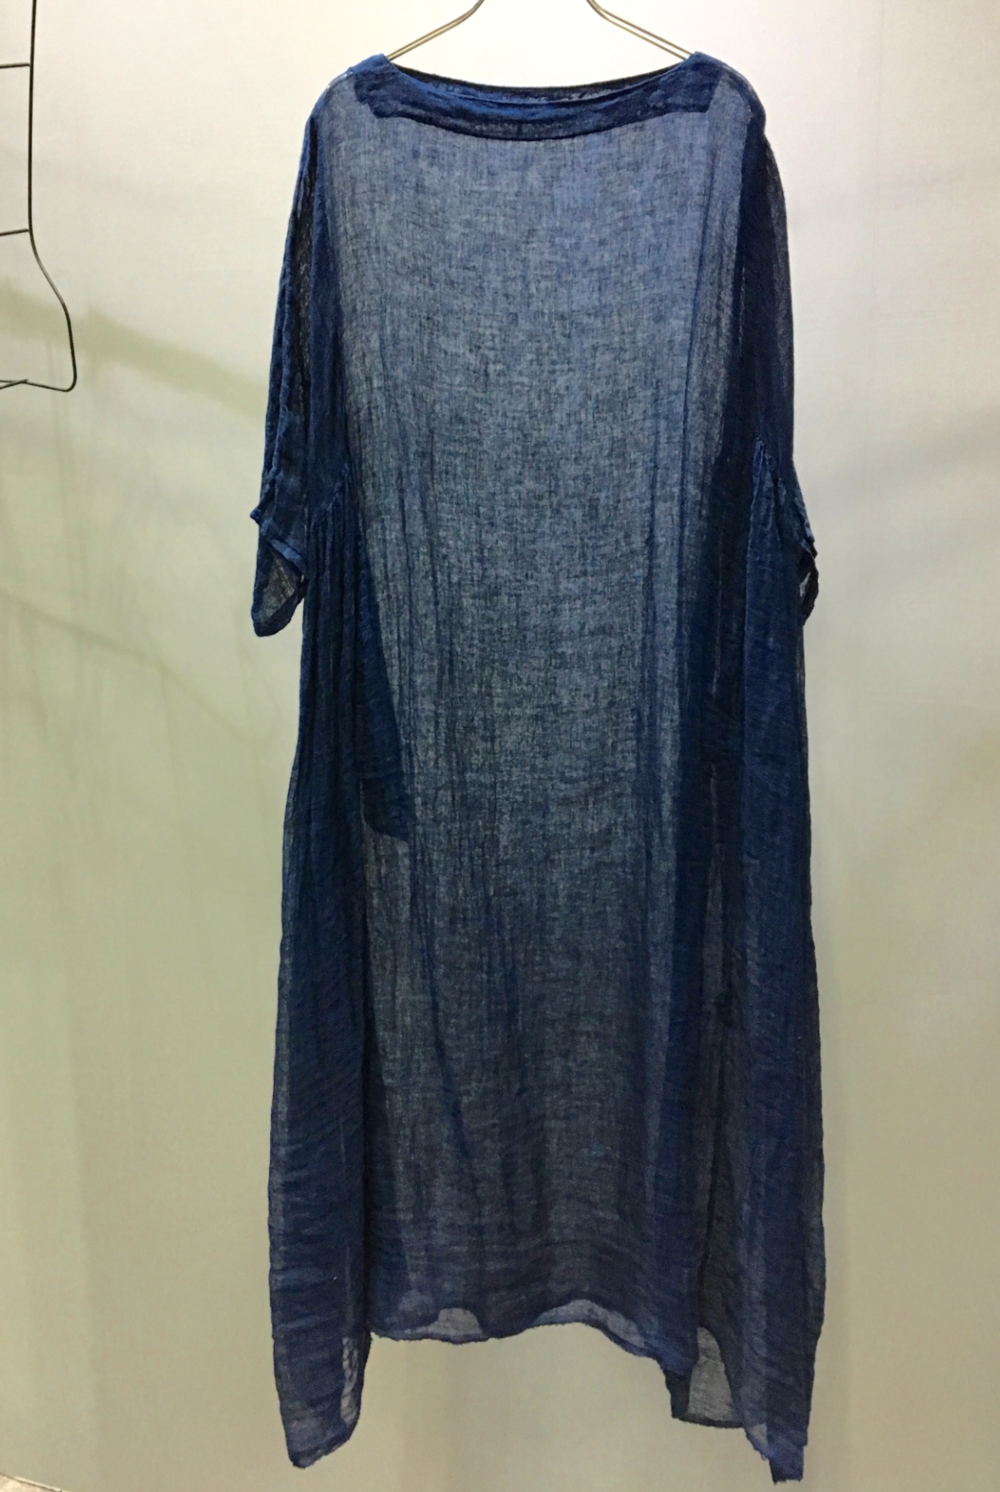 Natural Indigo Dye Linen Sheer Dress - Hand Dye with Aizome